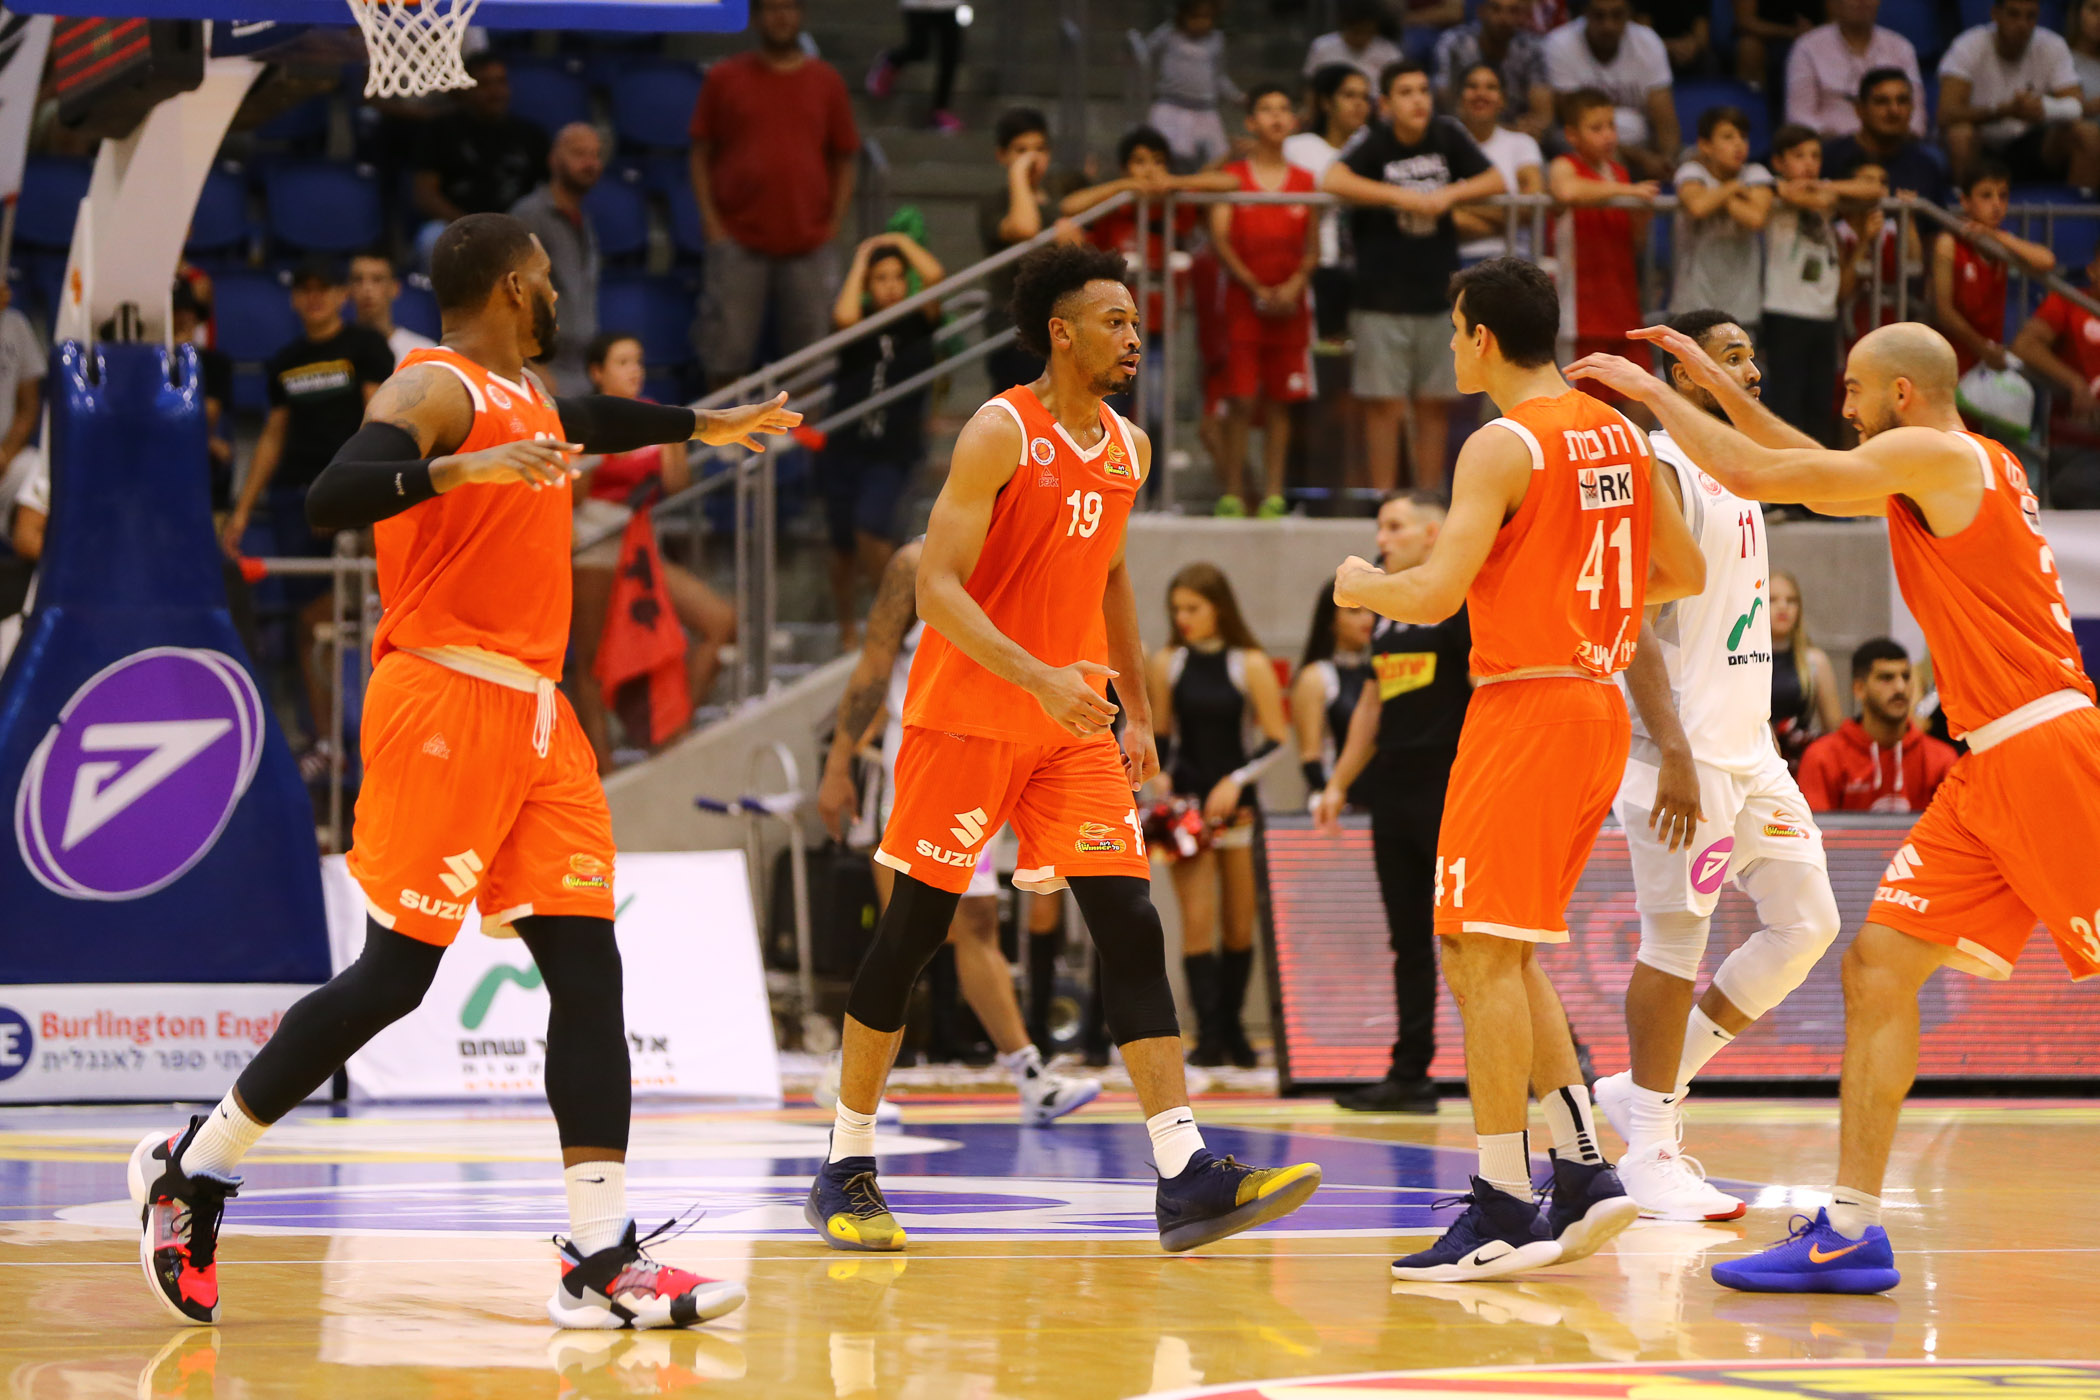 Day 2: Be'er Sheva - Maccabi Rishon 69:75